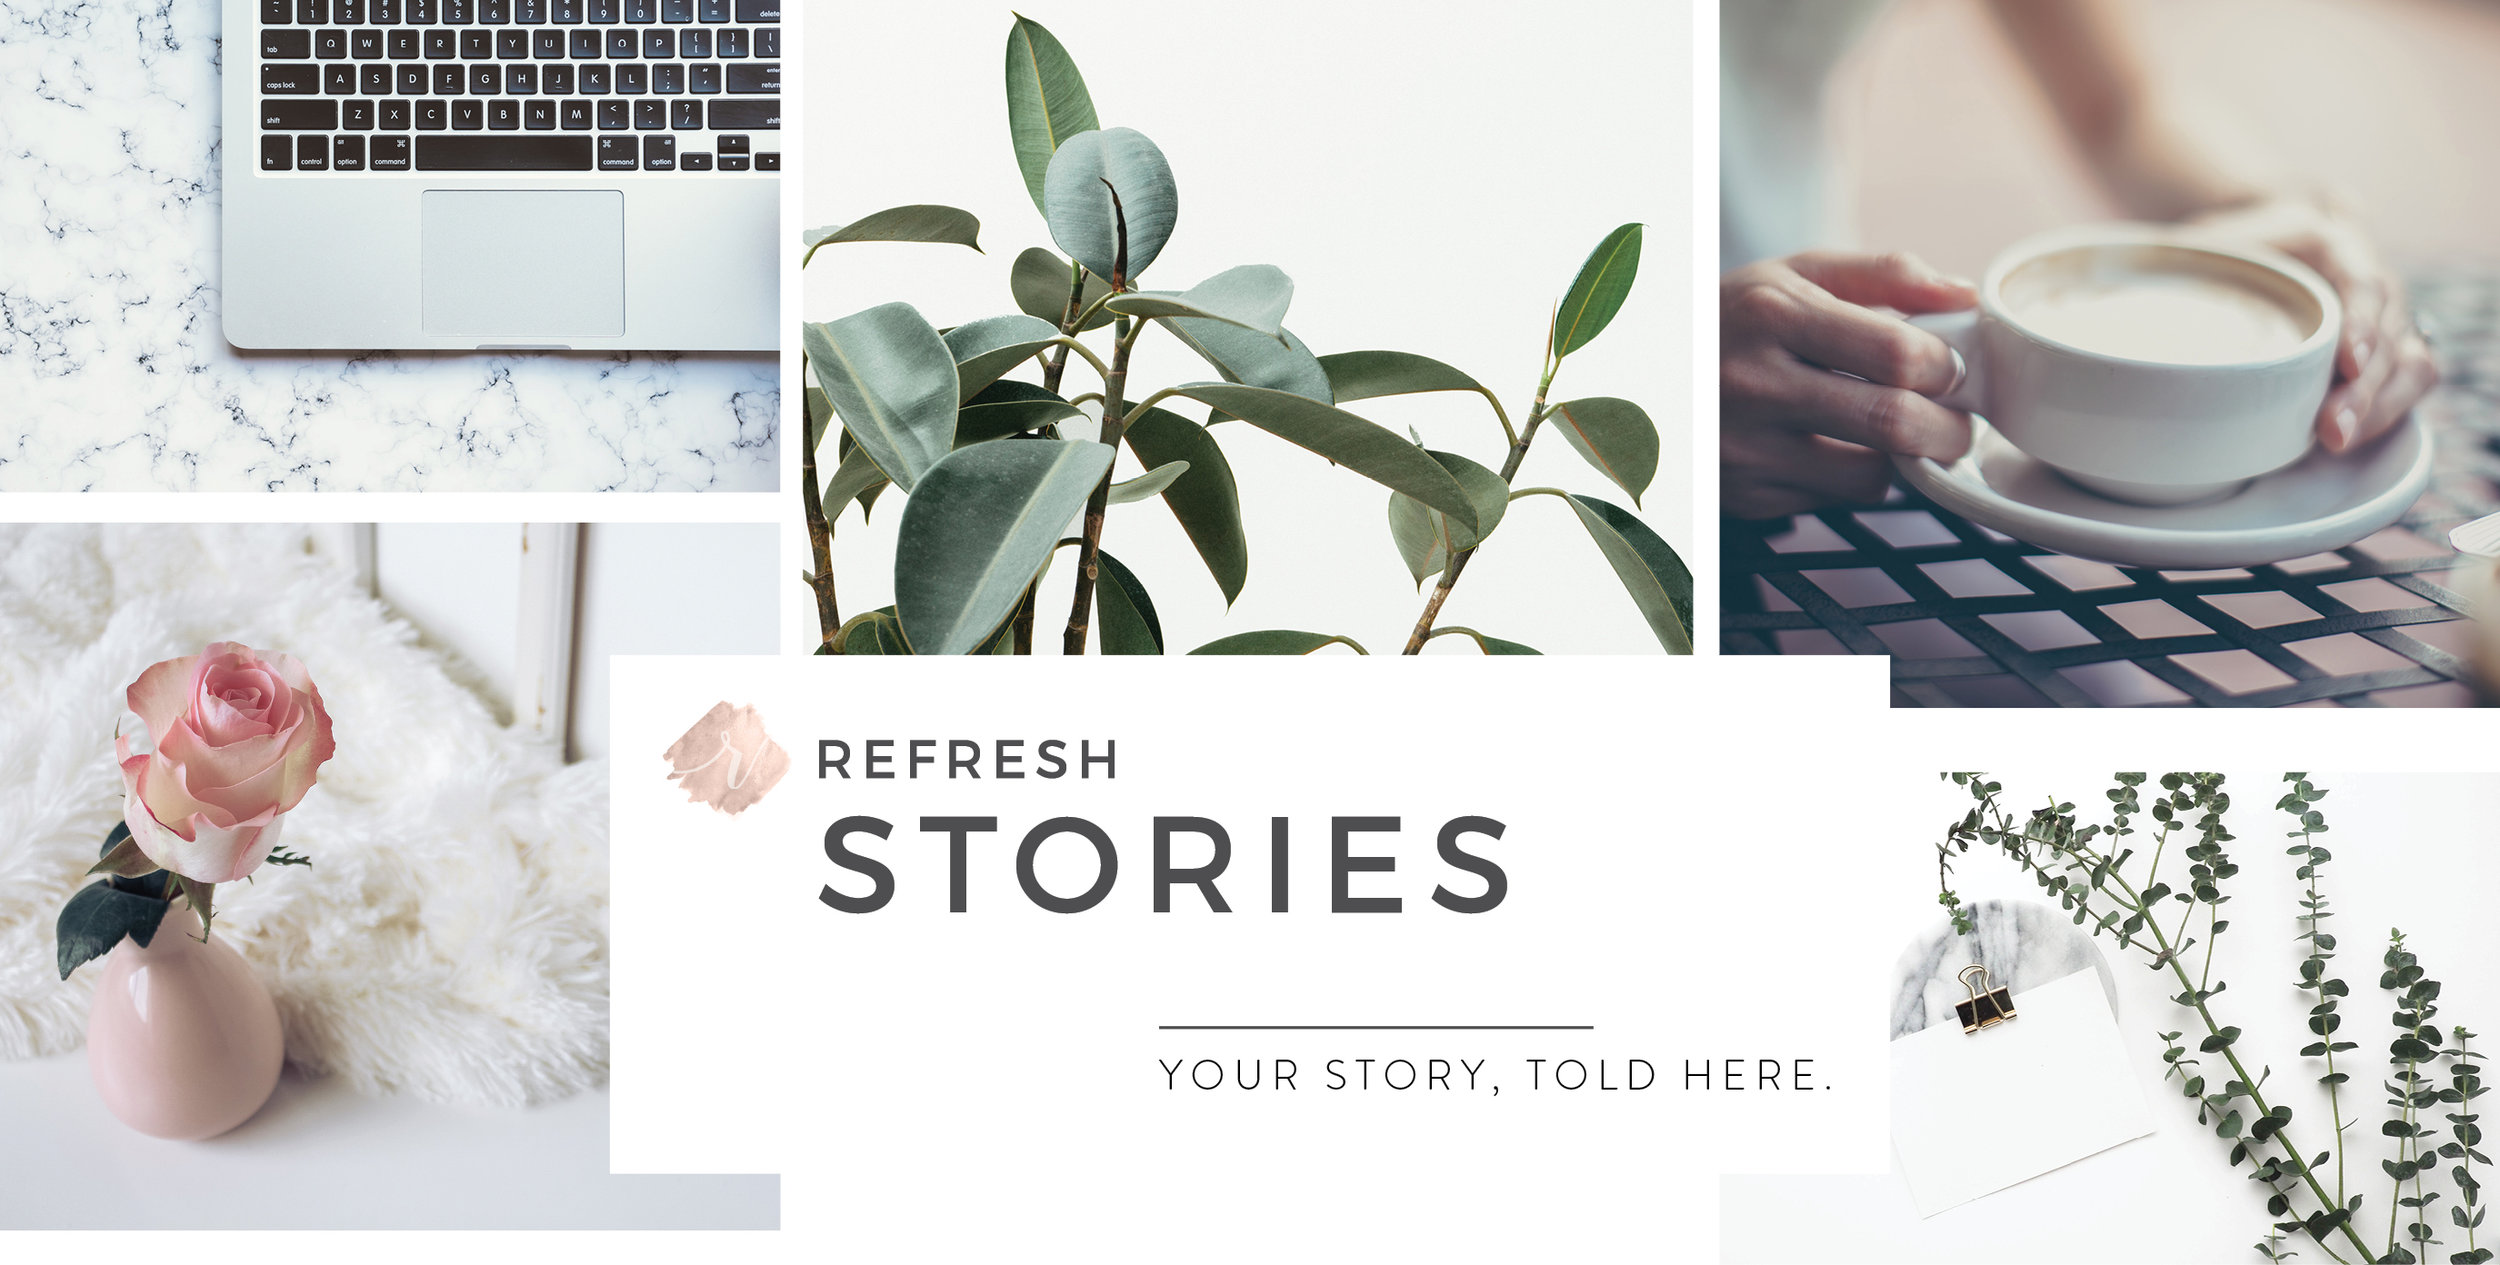 Refresh_Stories_MailChimp_Header_FINAL.jpg